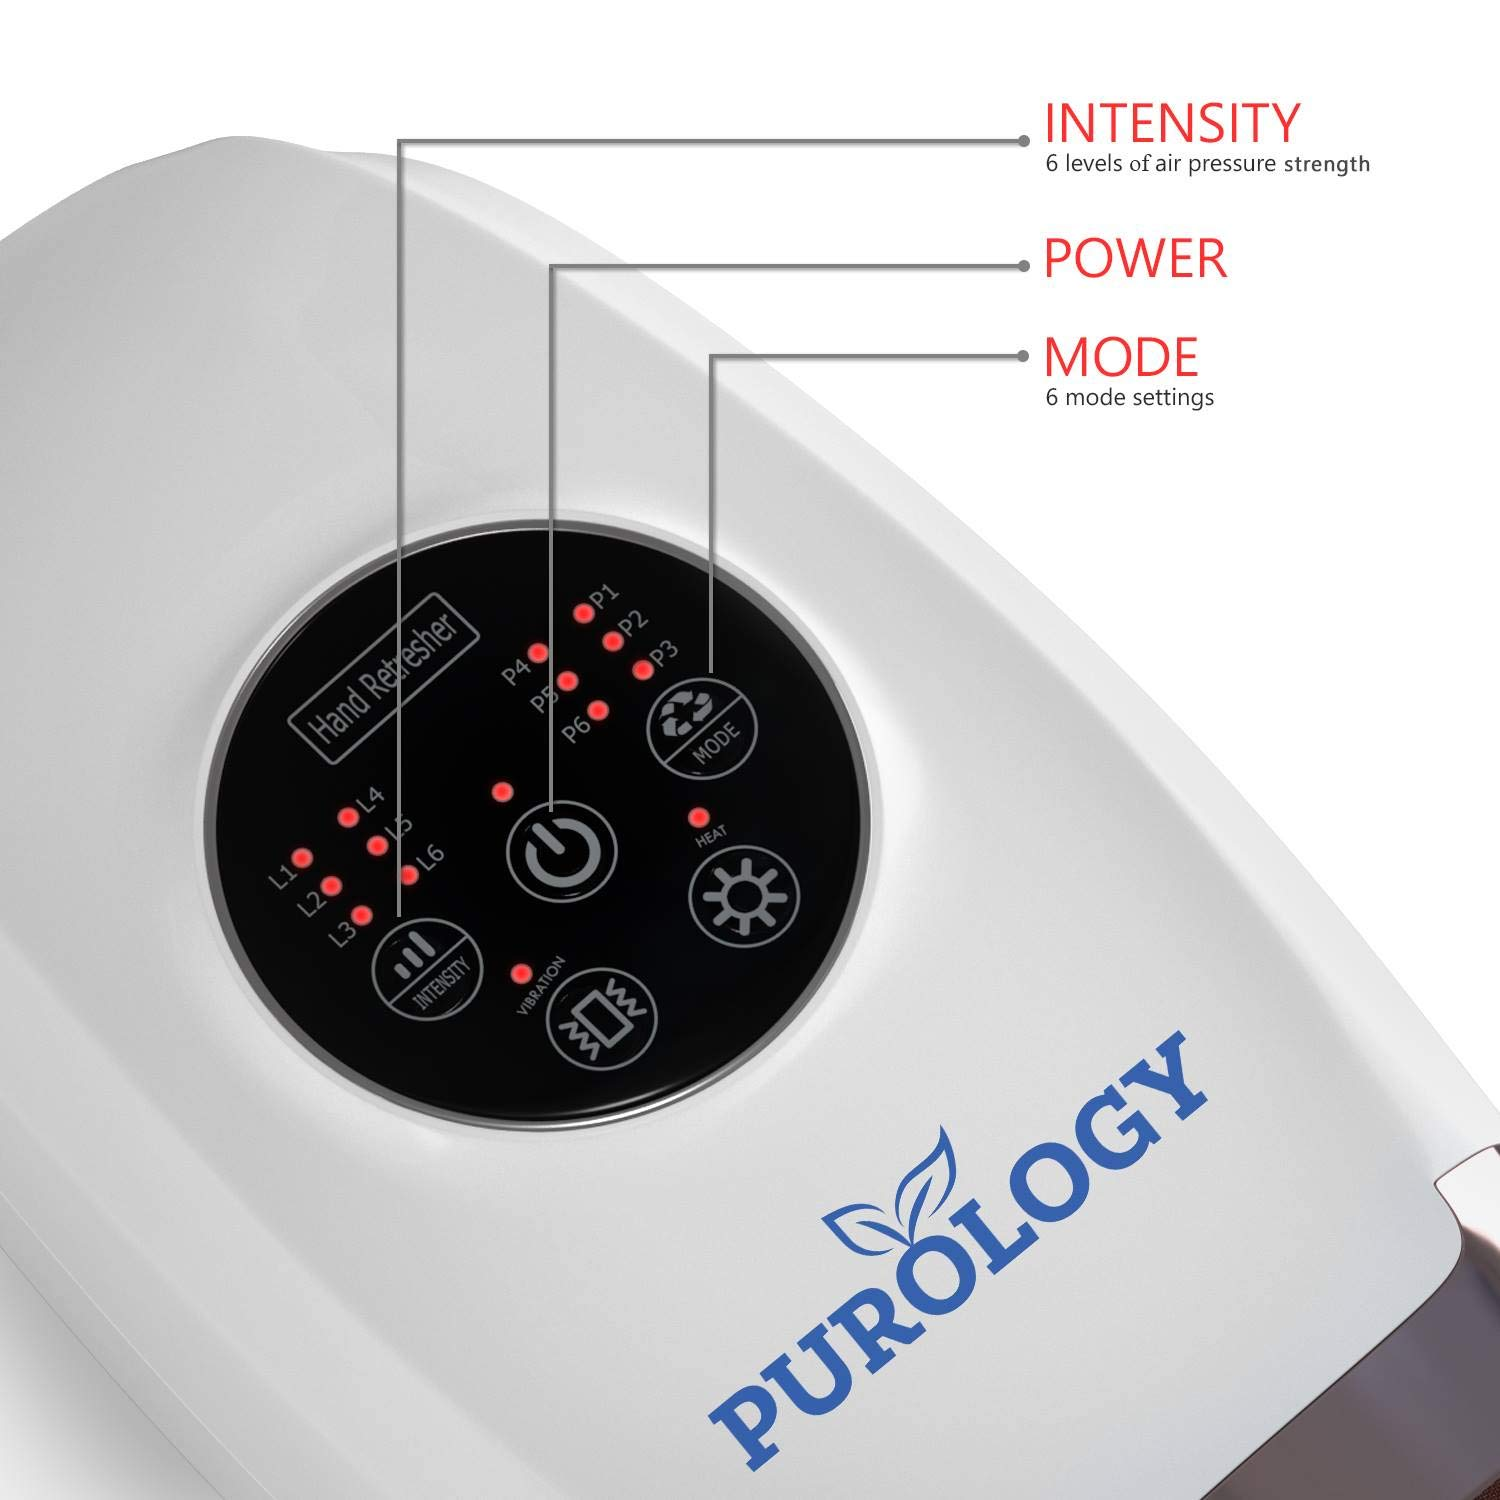 Hand Massager Pressure Point Acupressure Compression Therapy Reflexology With Heat For Arthritis Carpal Tunnel Syndrome Tendonitis Trigger Finger Pain Cordless by Purology   (Image #3)